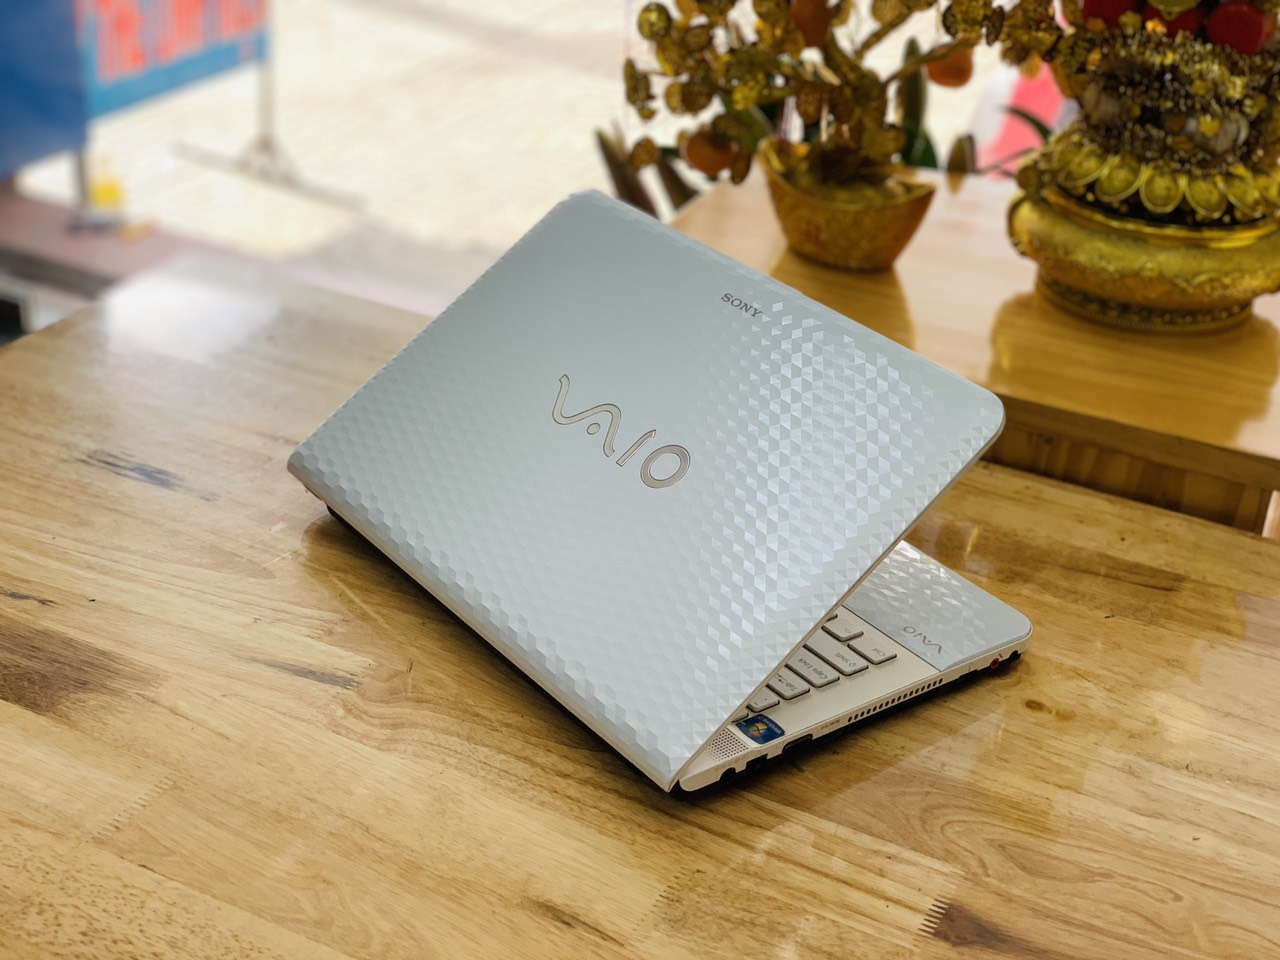 Thay ổ cứng laptop Sony Vaio